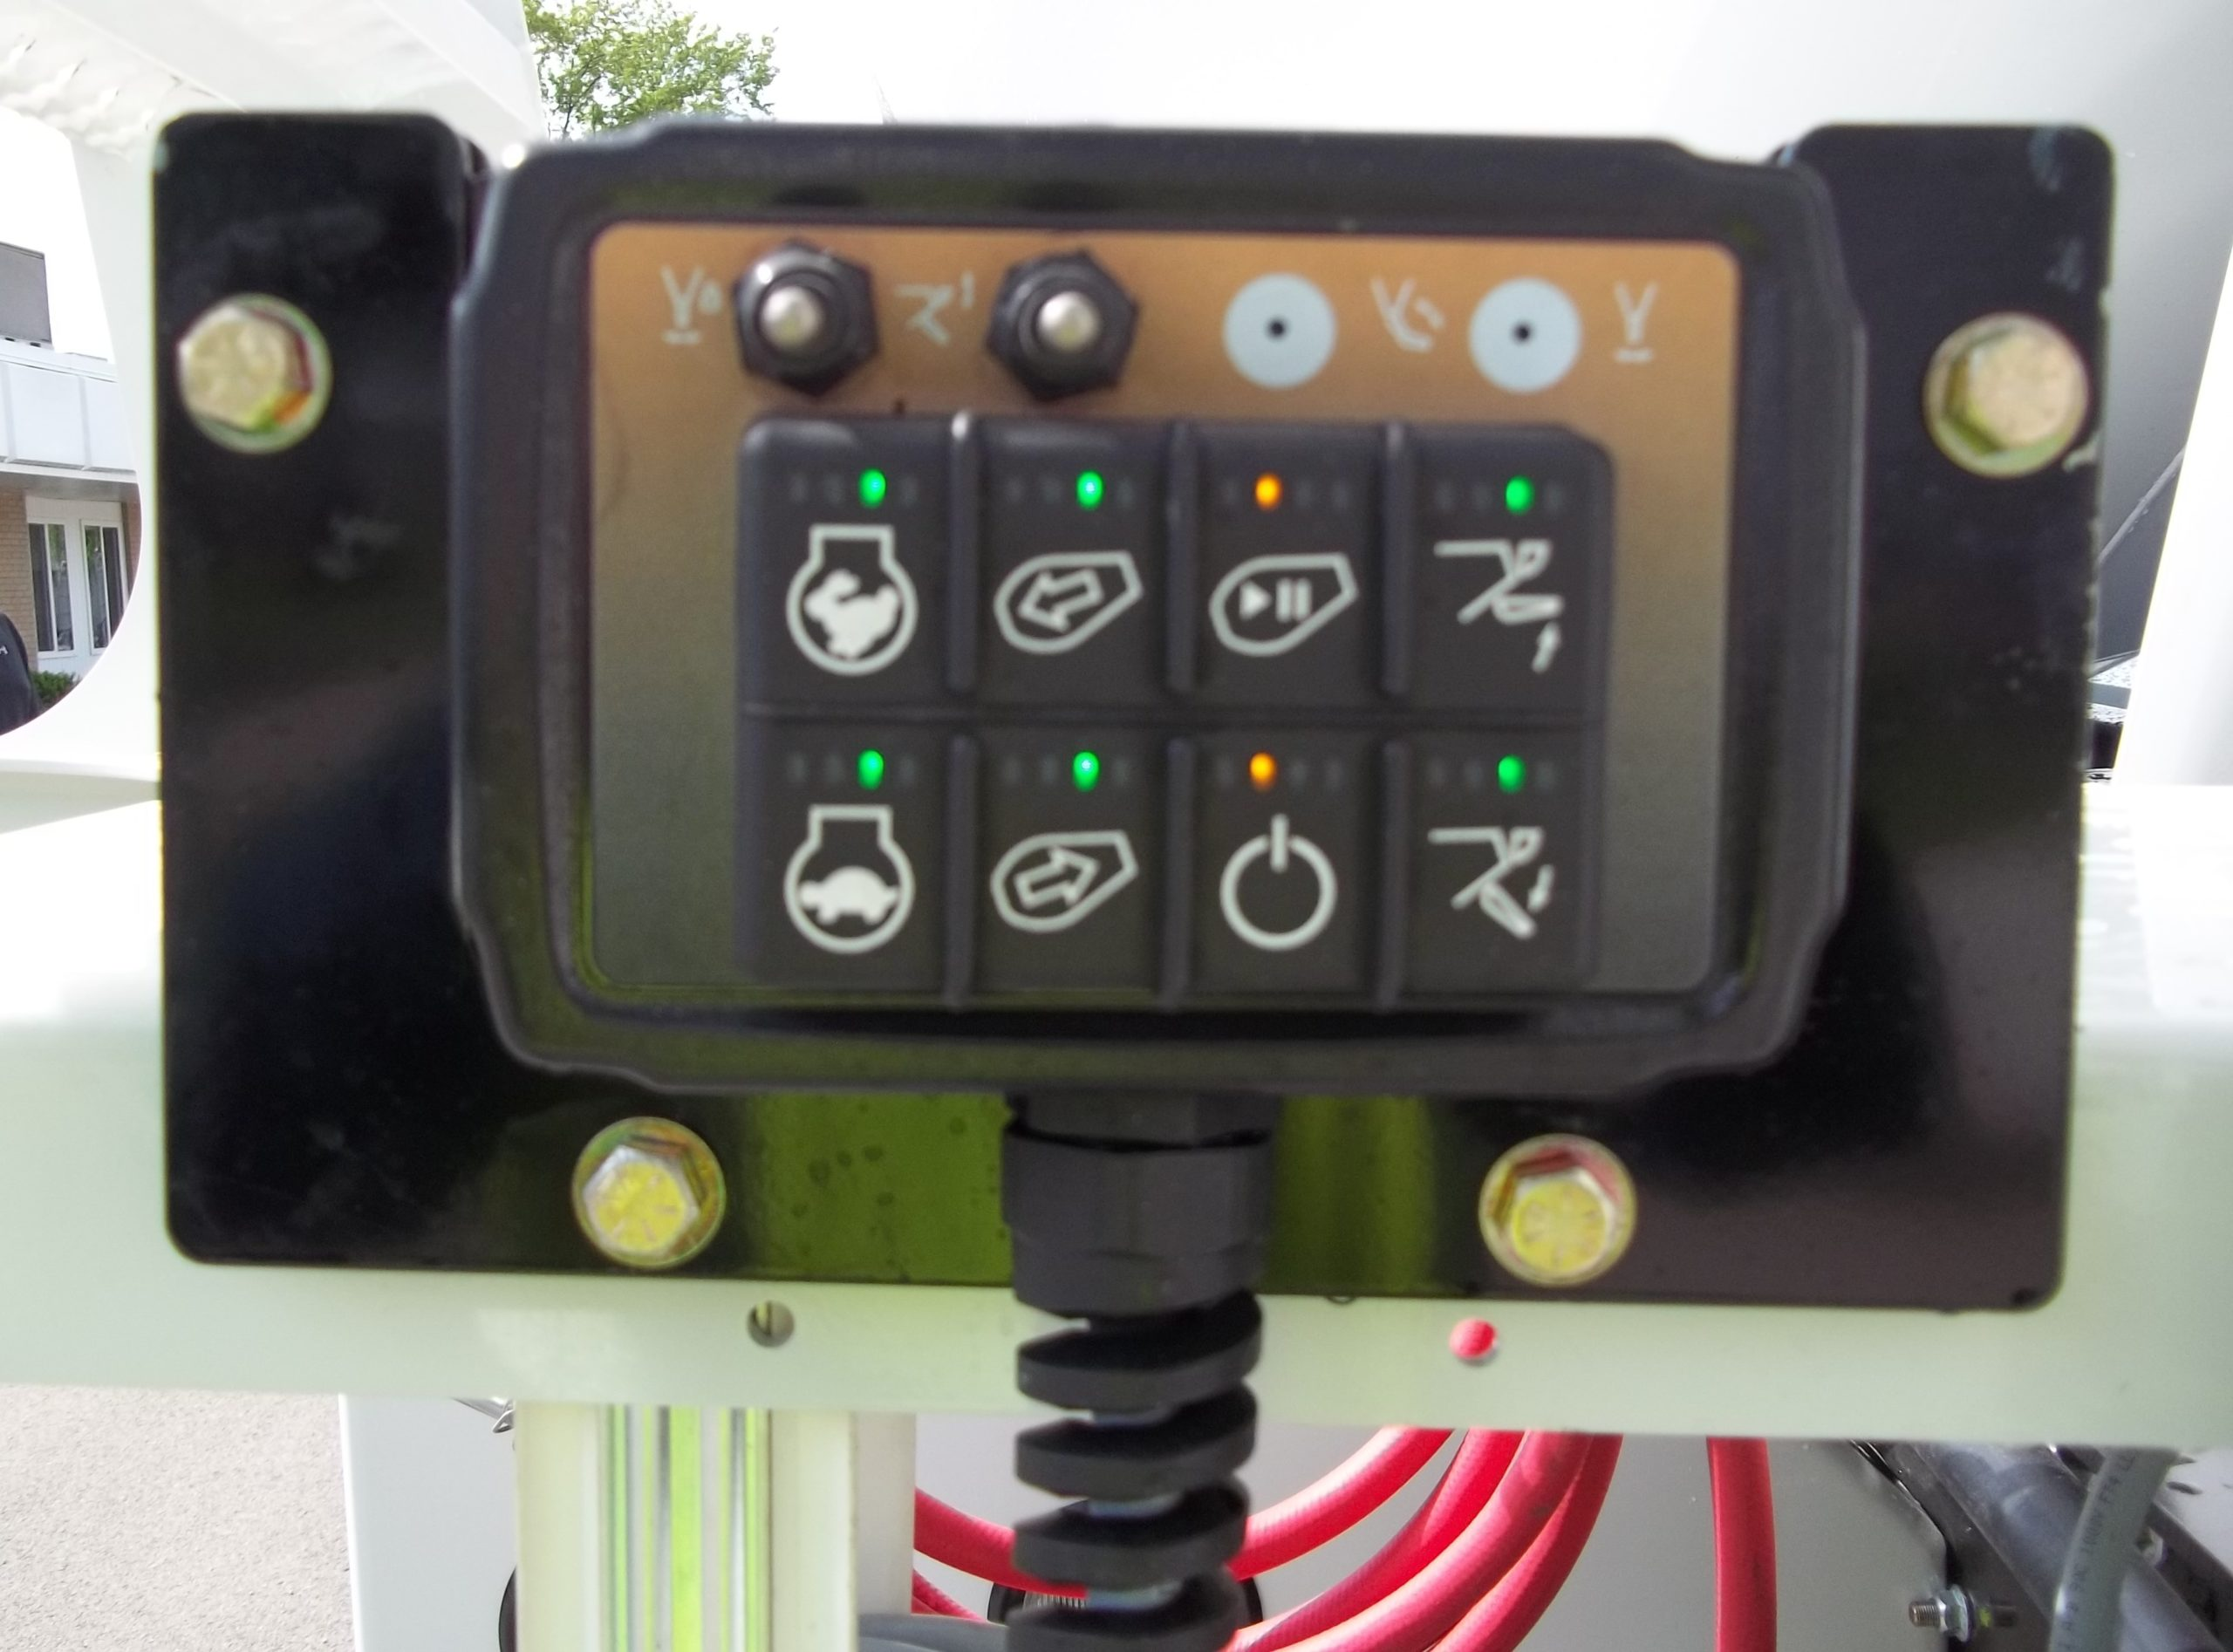 Rear Pendant Controls